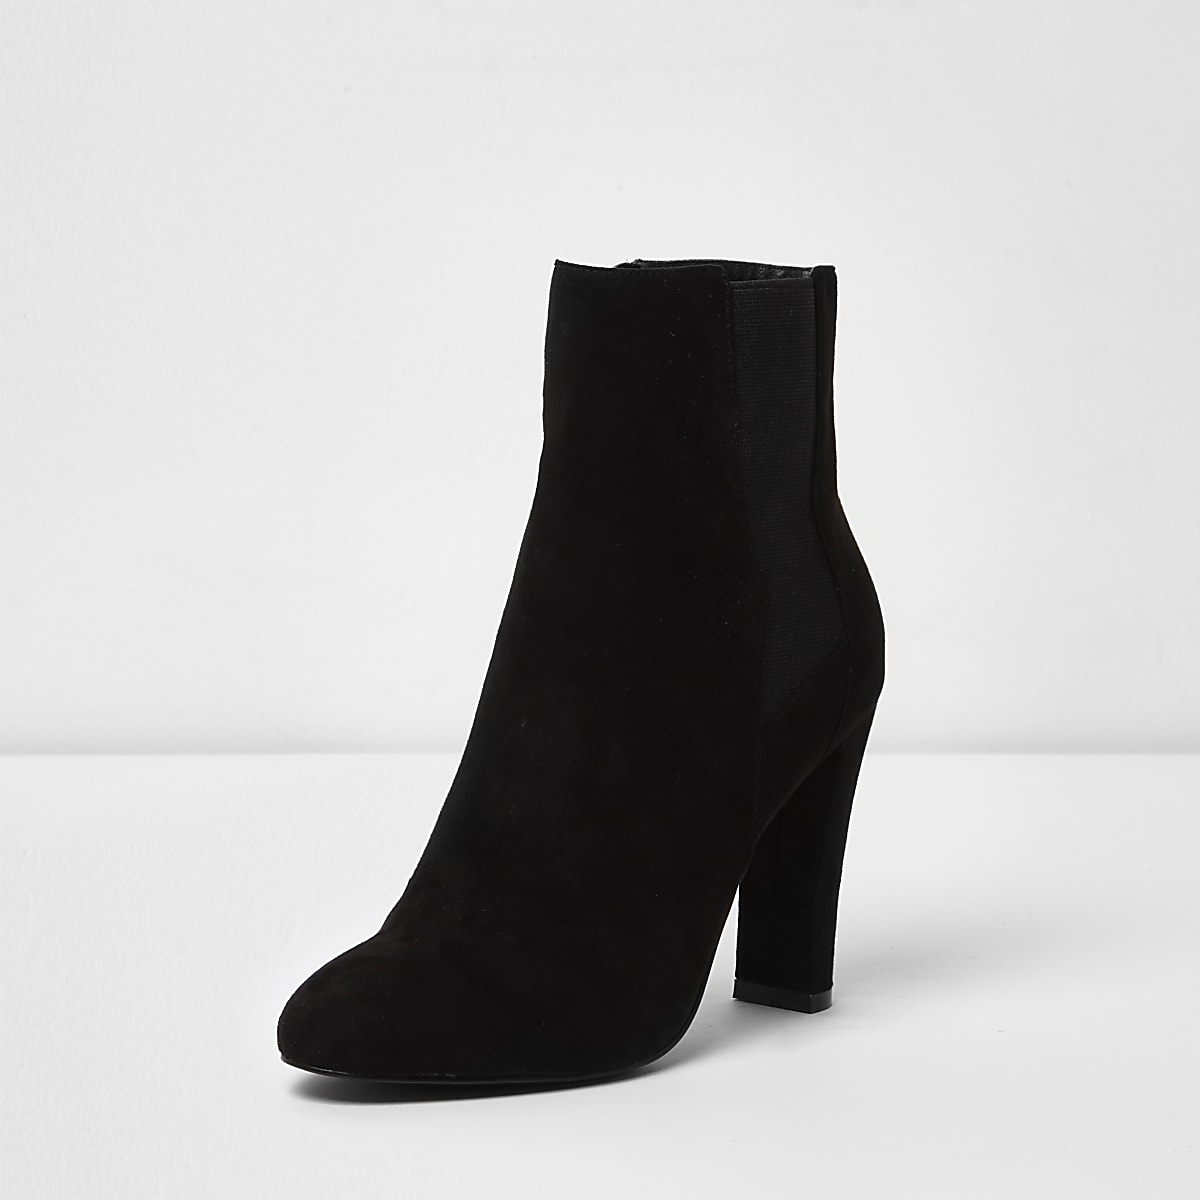 6491f8317694 Black heeled chelsea boots - Boots - Shoes   Boots - women